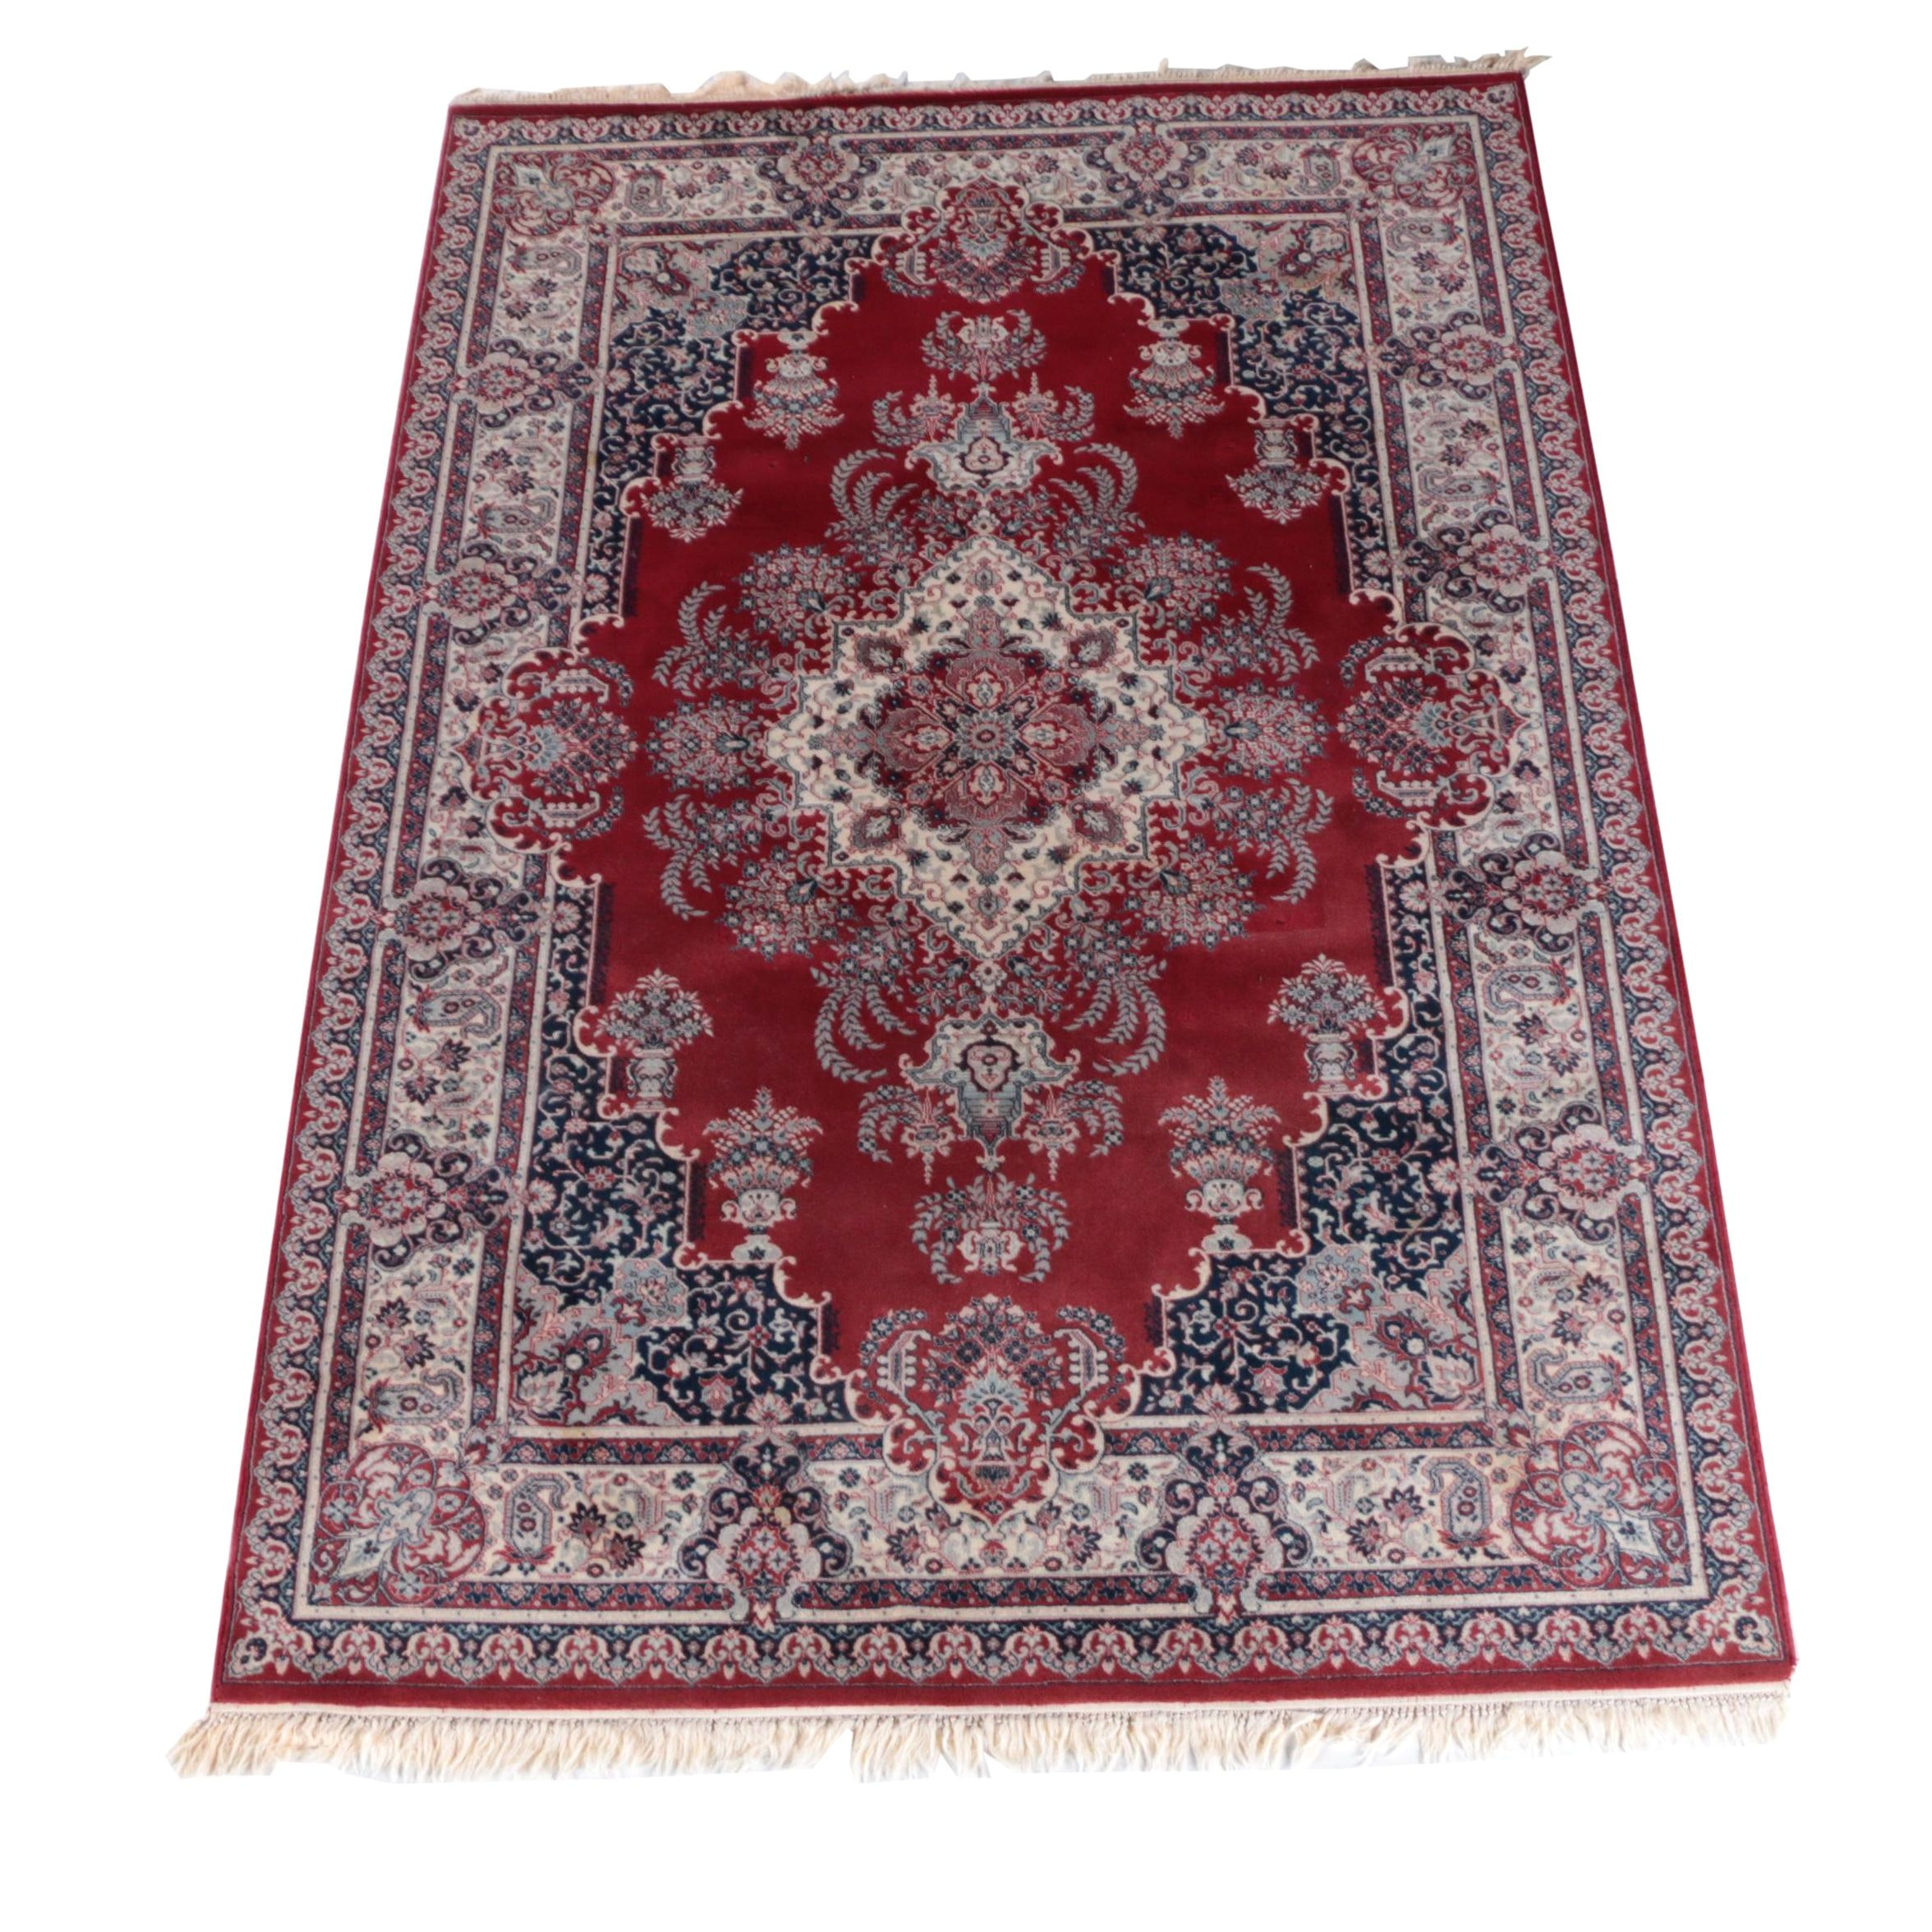 Machine Made Persian Style Area Rug by Galaxie